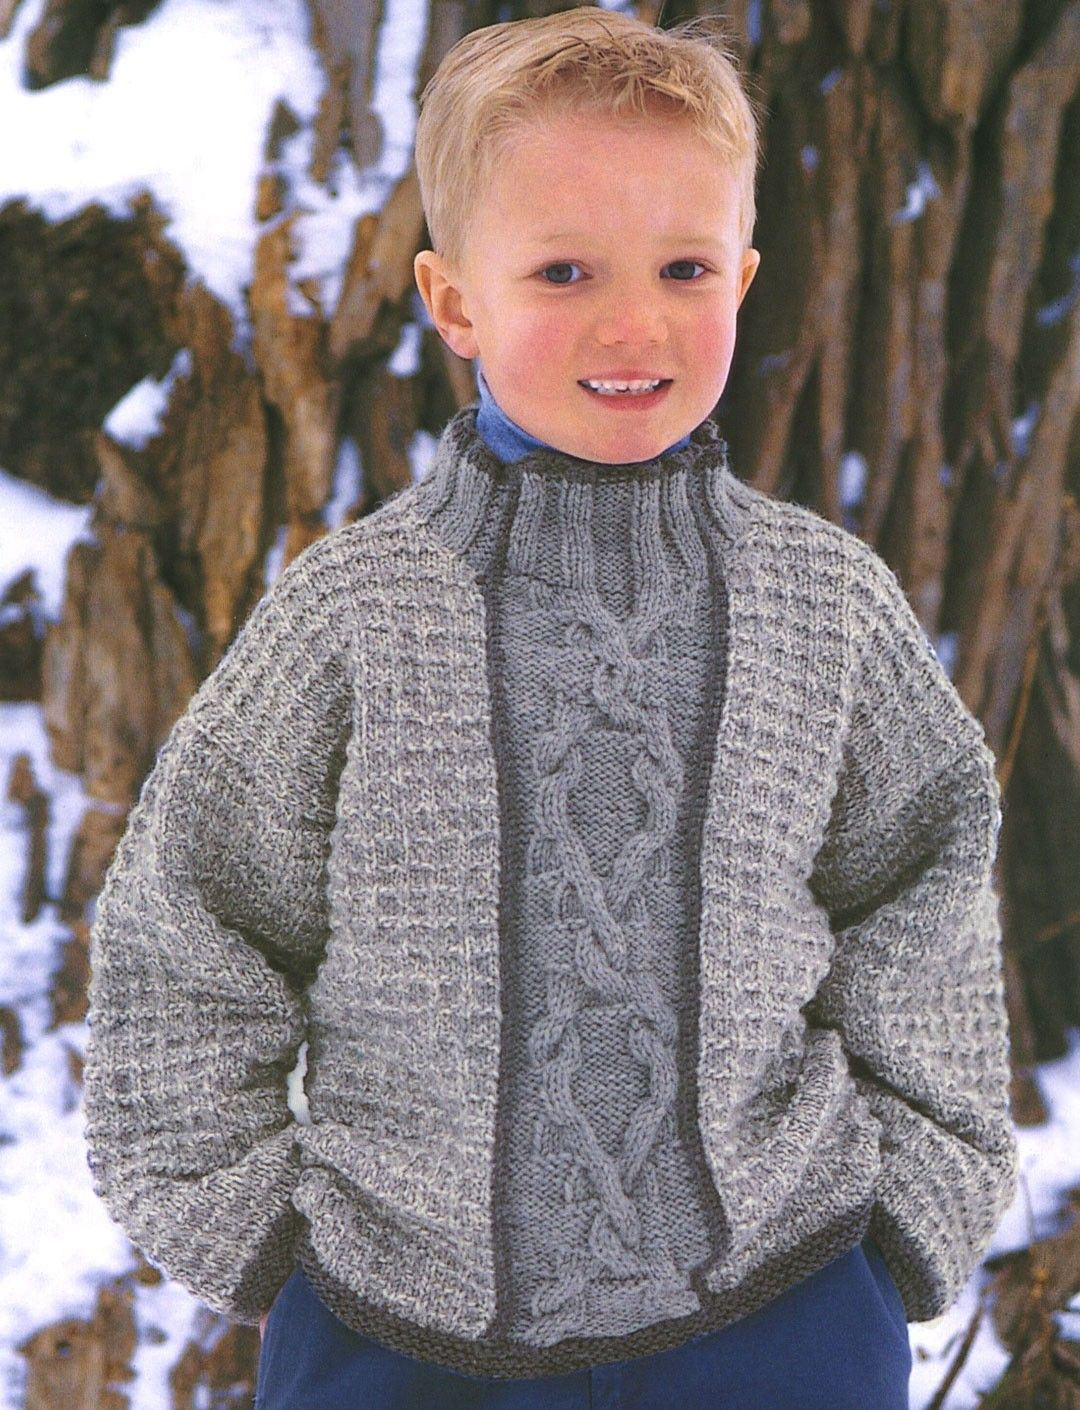 Yarnspirations patons faded cable panel for boy patterns knitting patterns galore faded cable panel for boy bankloansurffo Image collections